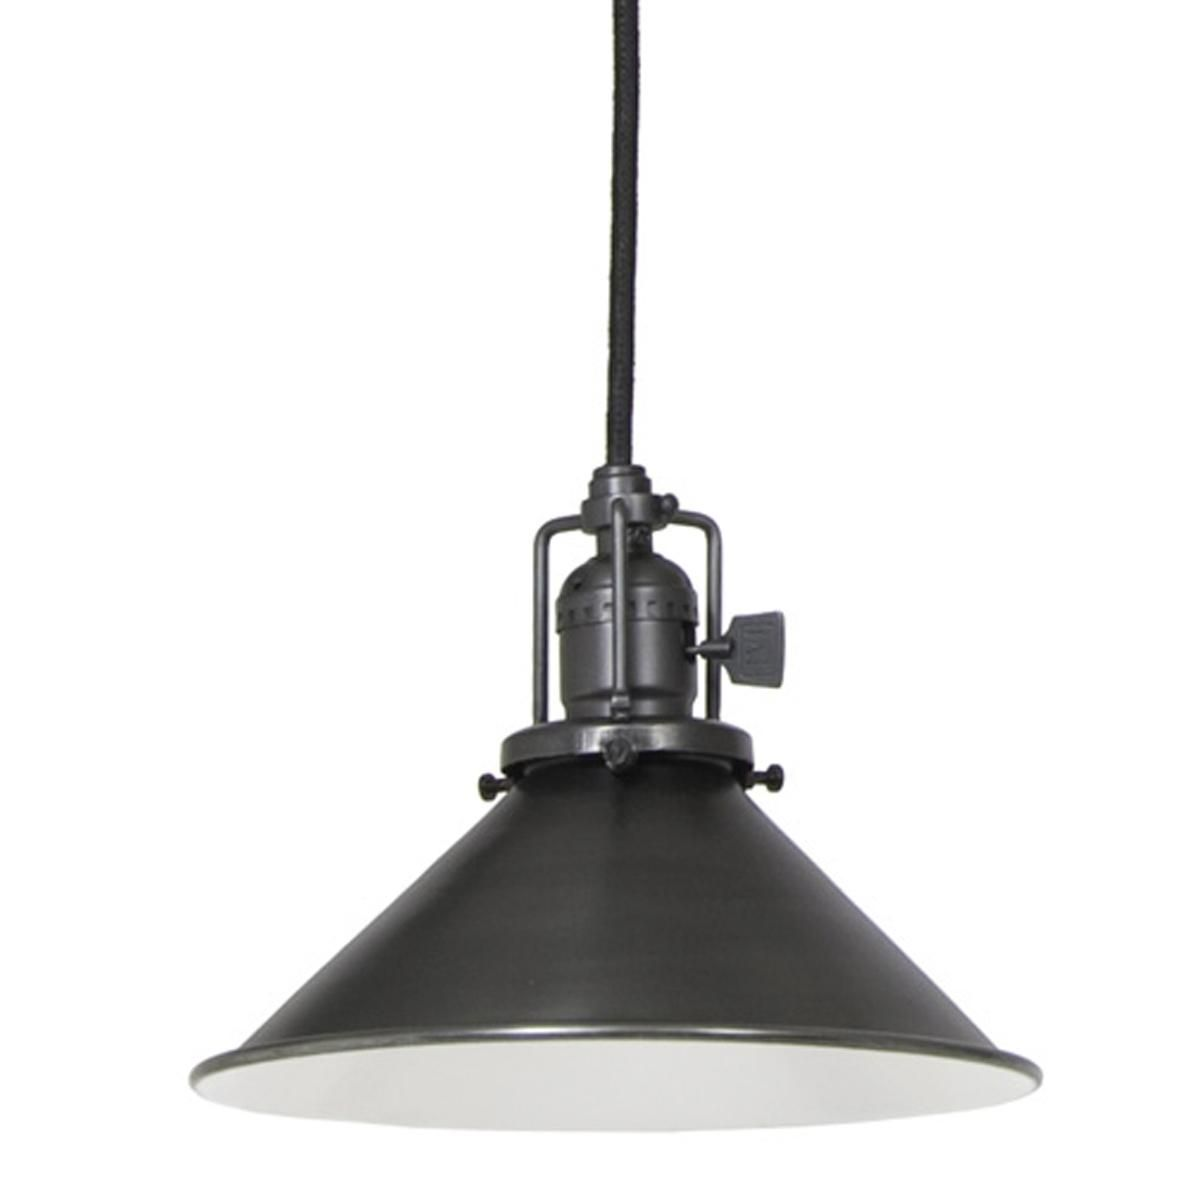 Cone Shade Industrial Pendant-Gunmetal? Two Over The Sink